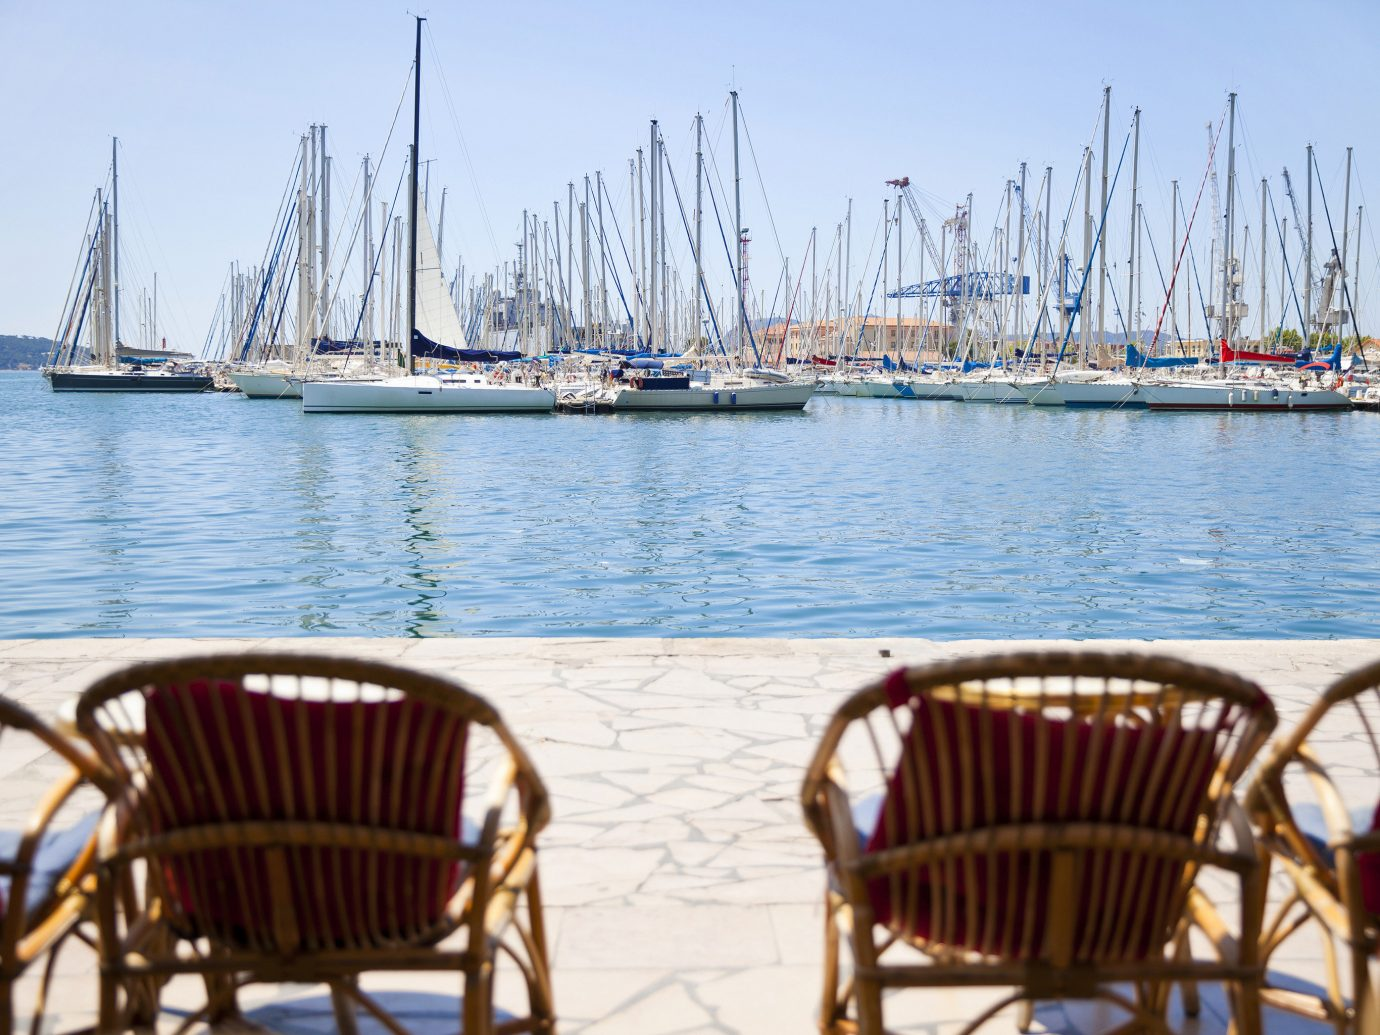 Road Trips Trip Ideas outdoor sky water chair marina Boat Harbor dock scene port watercraft sailing ship Sea ship boating sailboat tall ship water transportation windjammer day